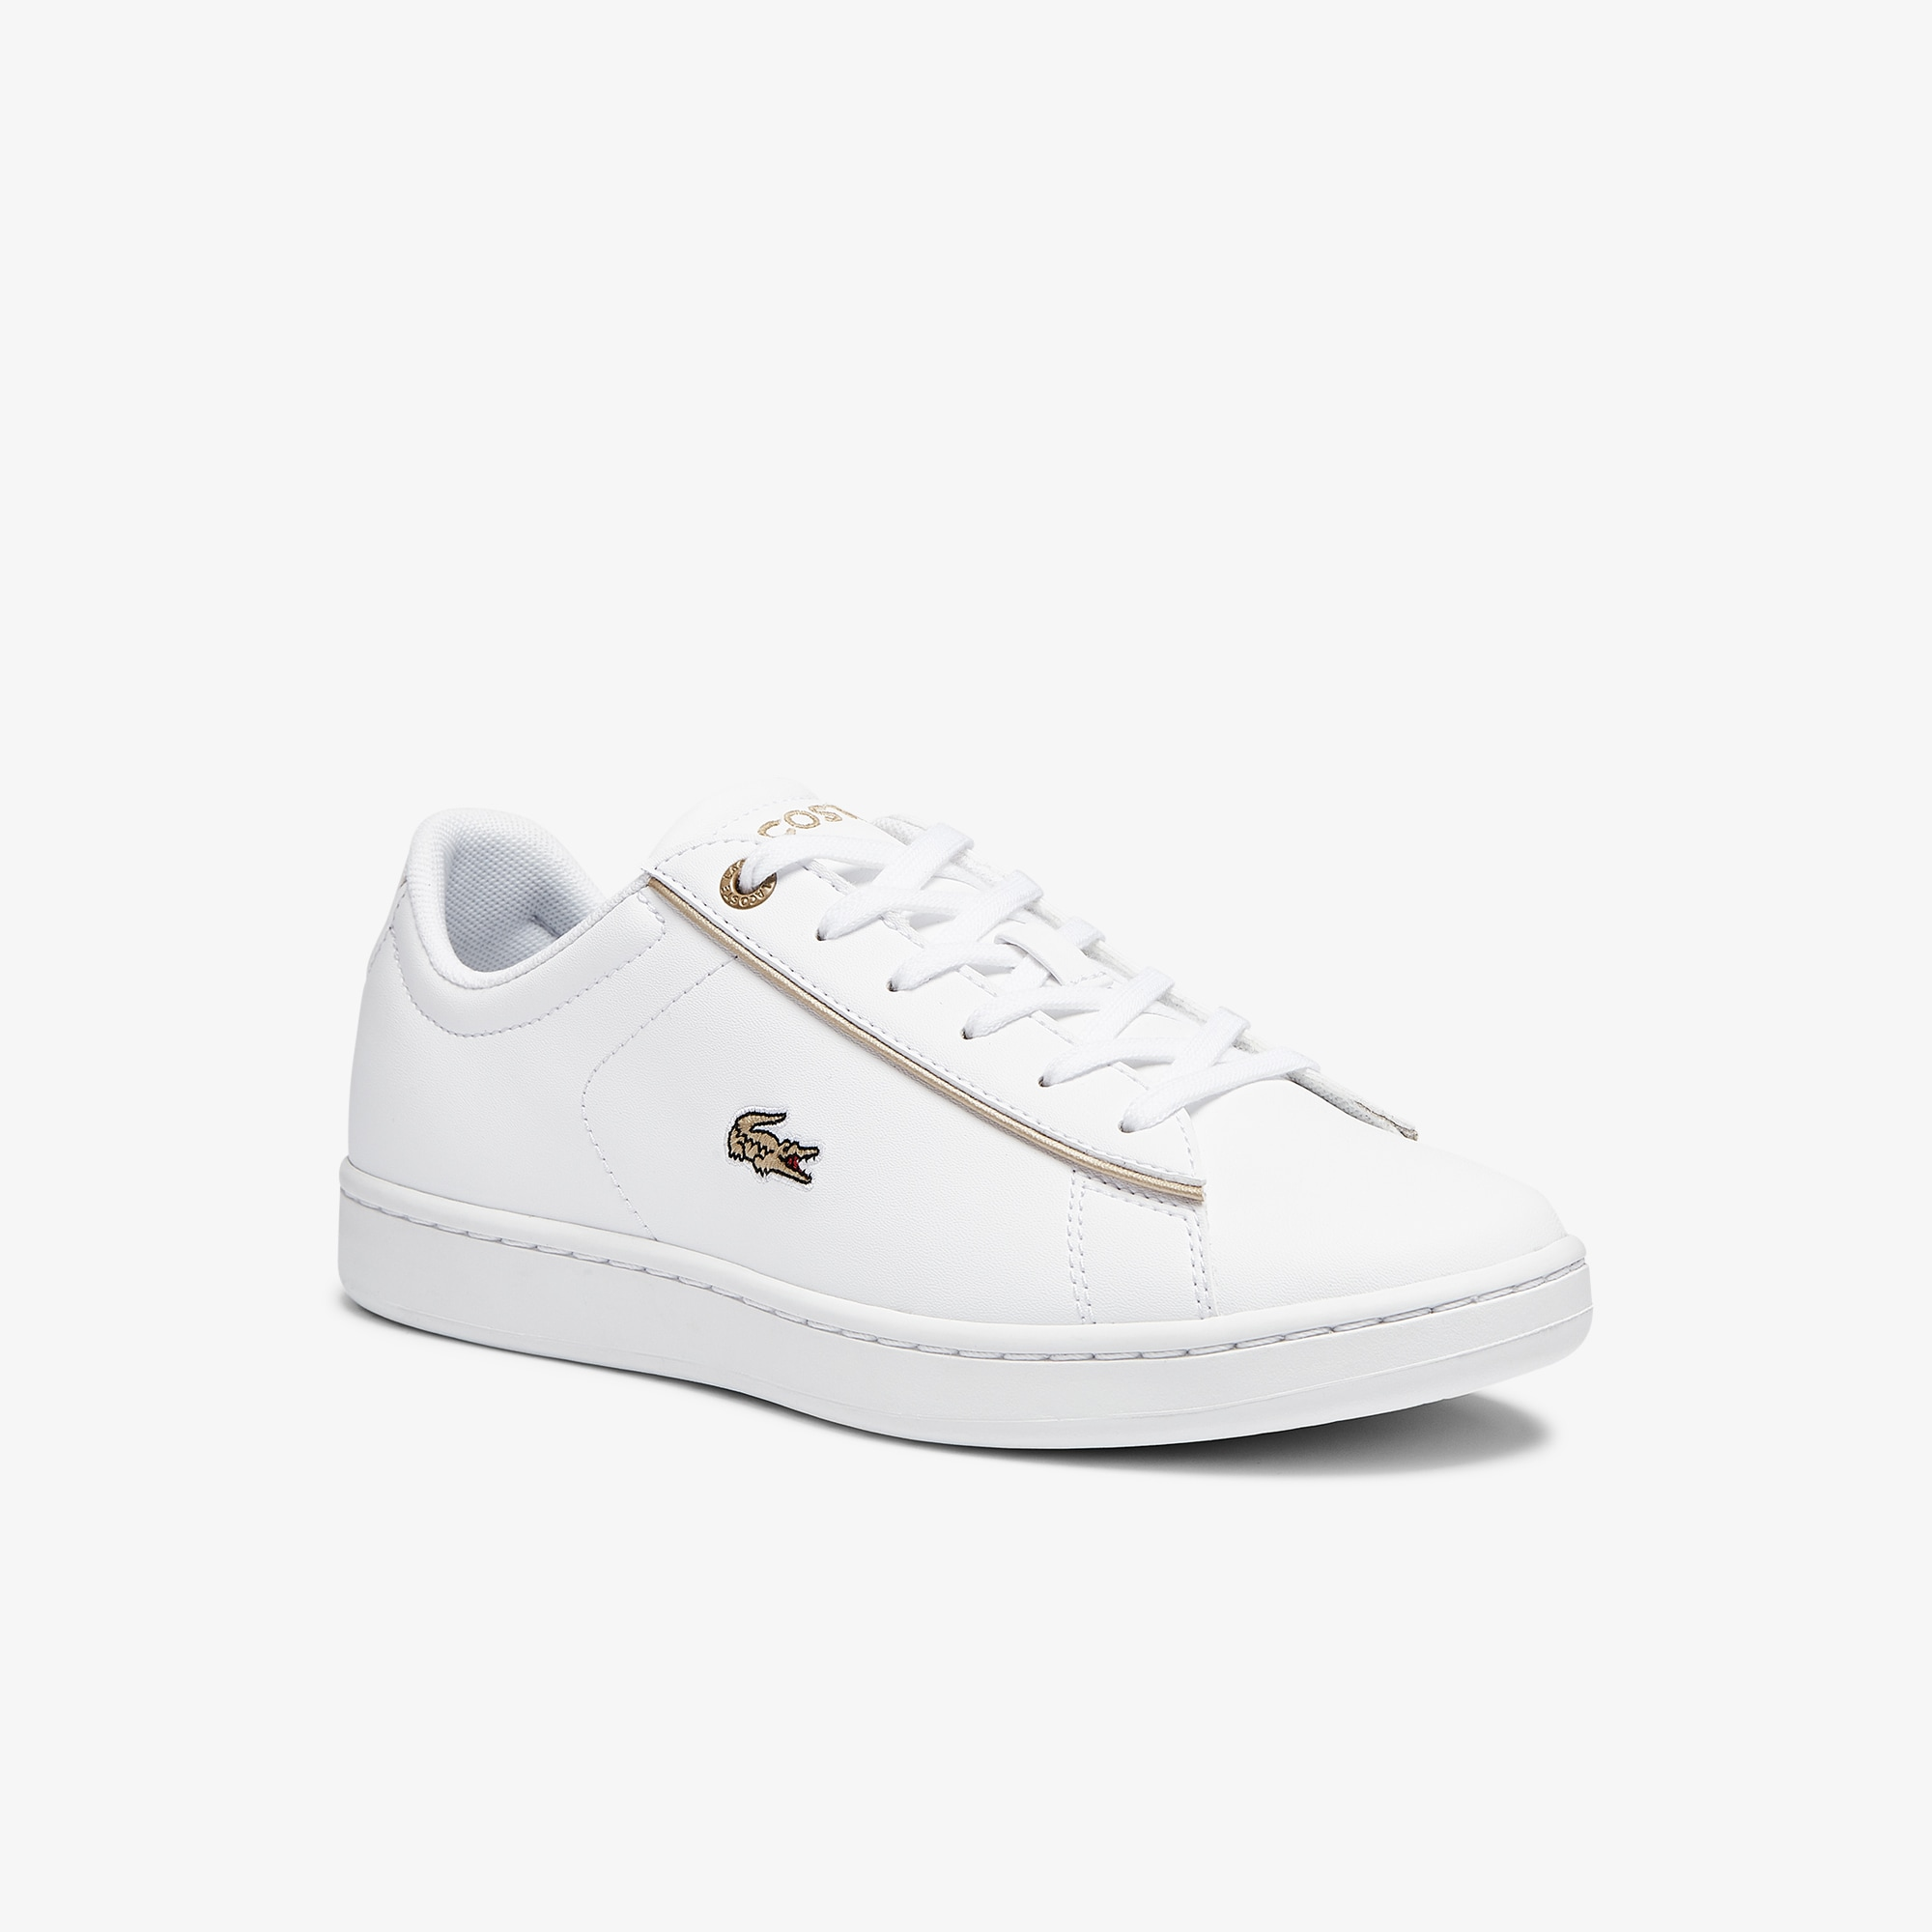 Lacoste Sneakers Carnaby Evo junior en synthétique Taille 34.5 Blanc/doré